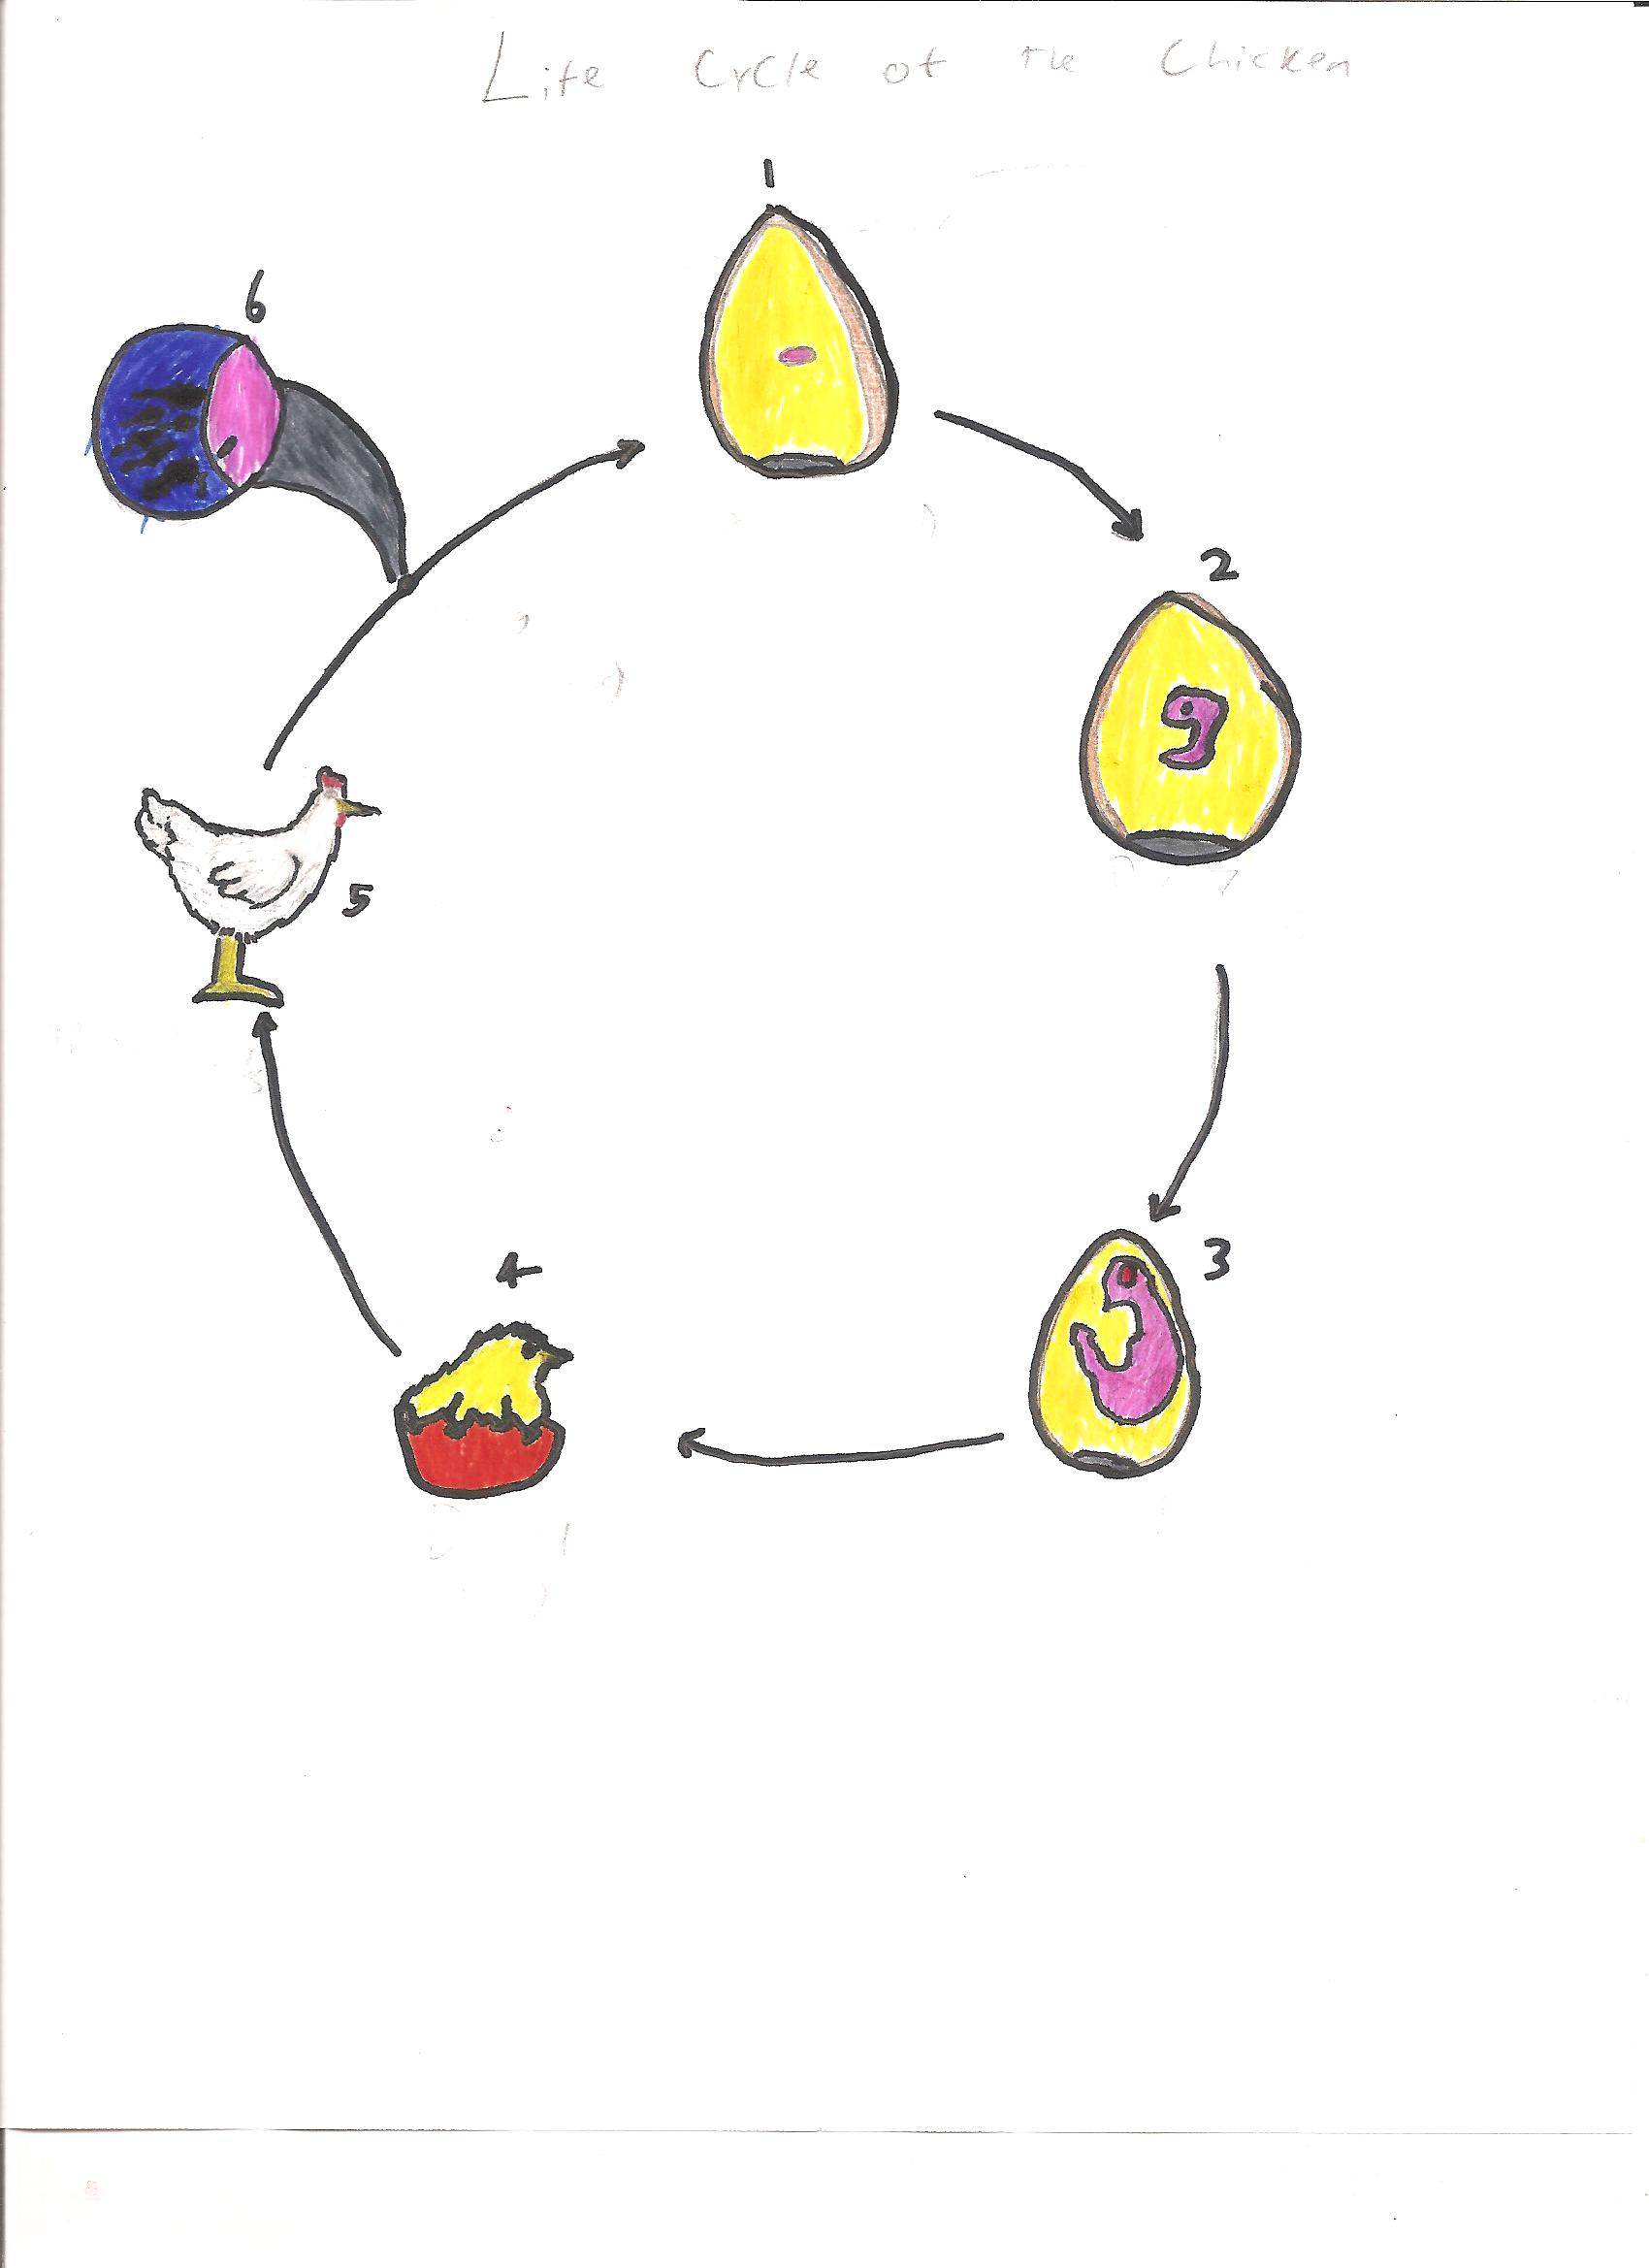 File:Life Cycle of the Chicken.jpg